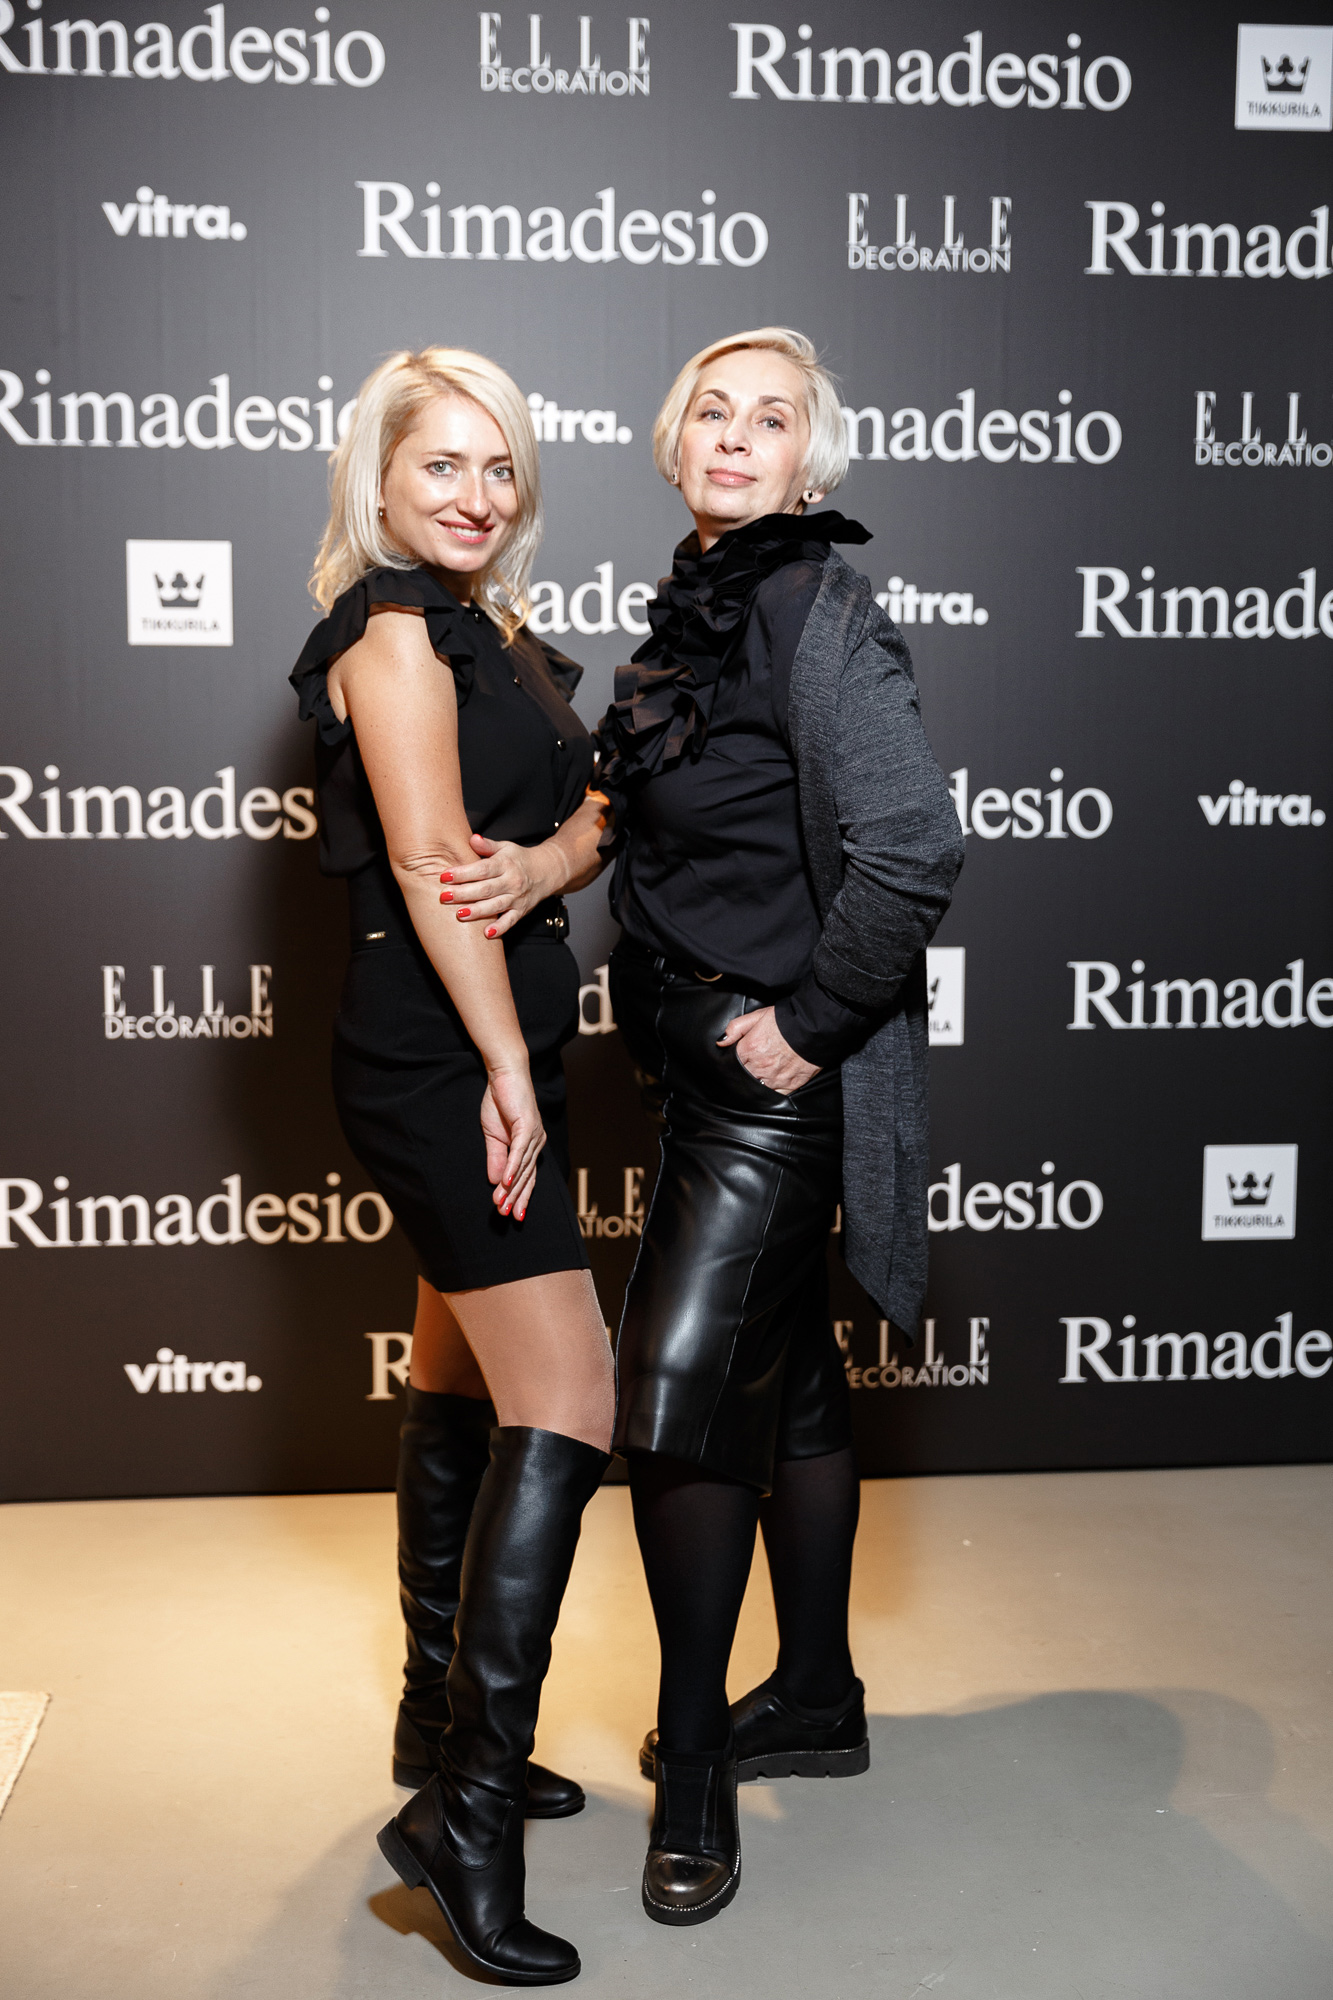 rimadesio-moscow-246